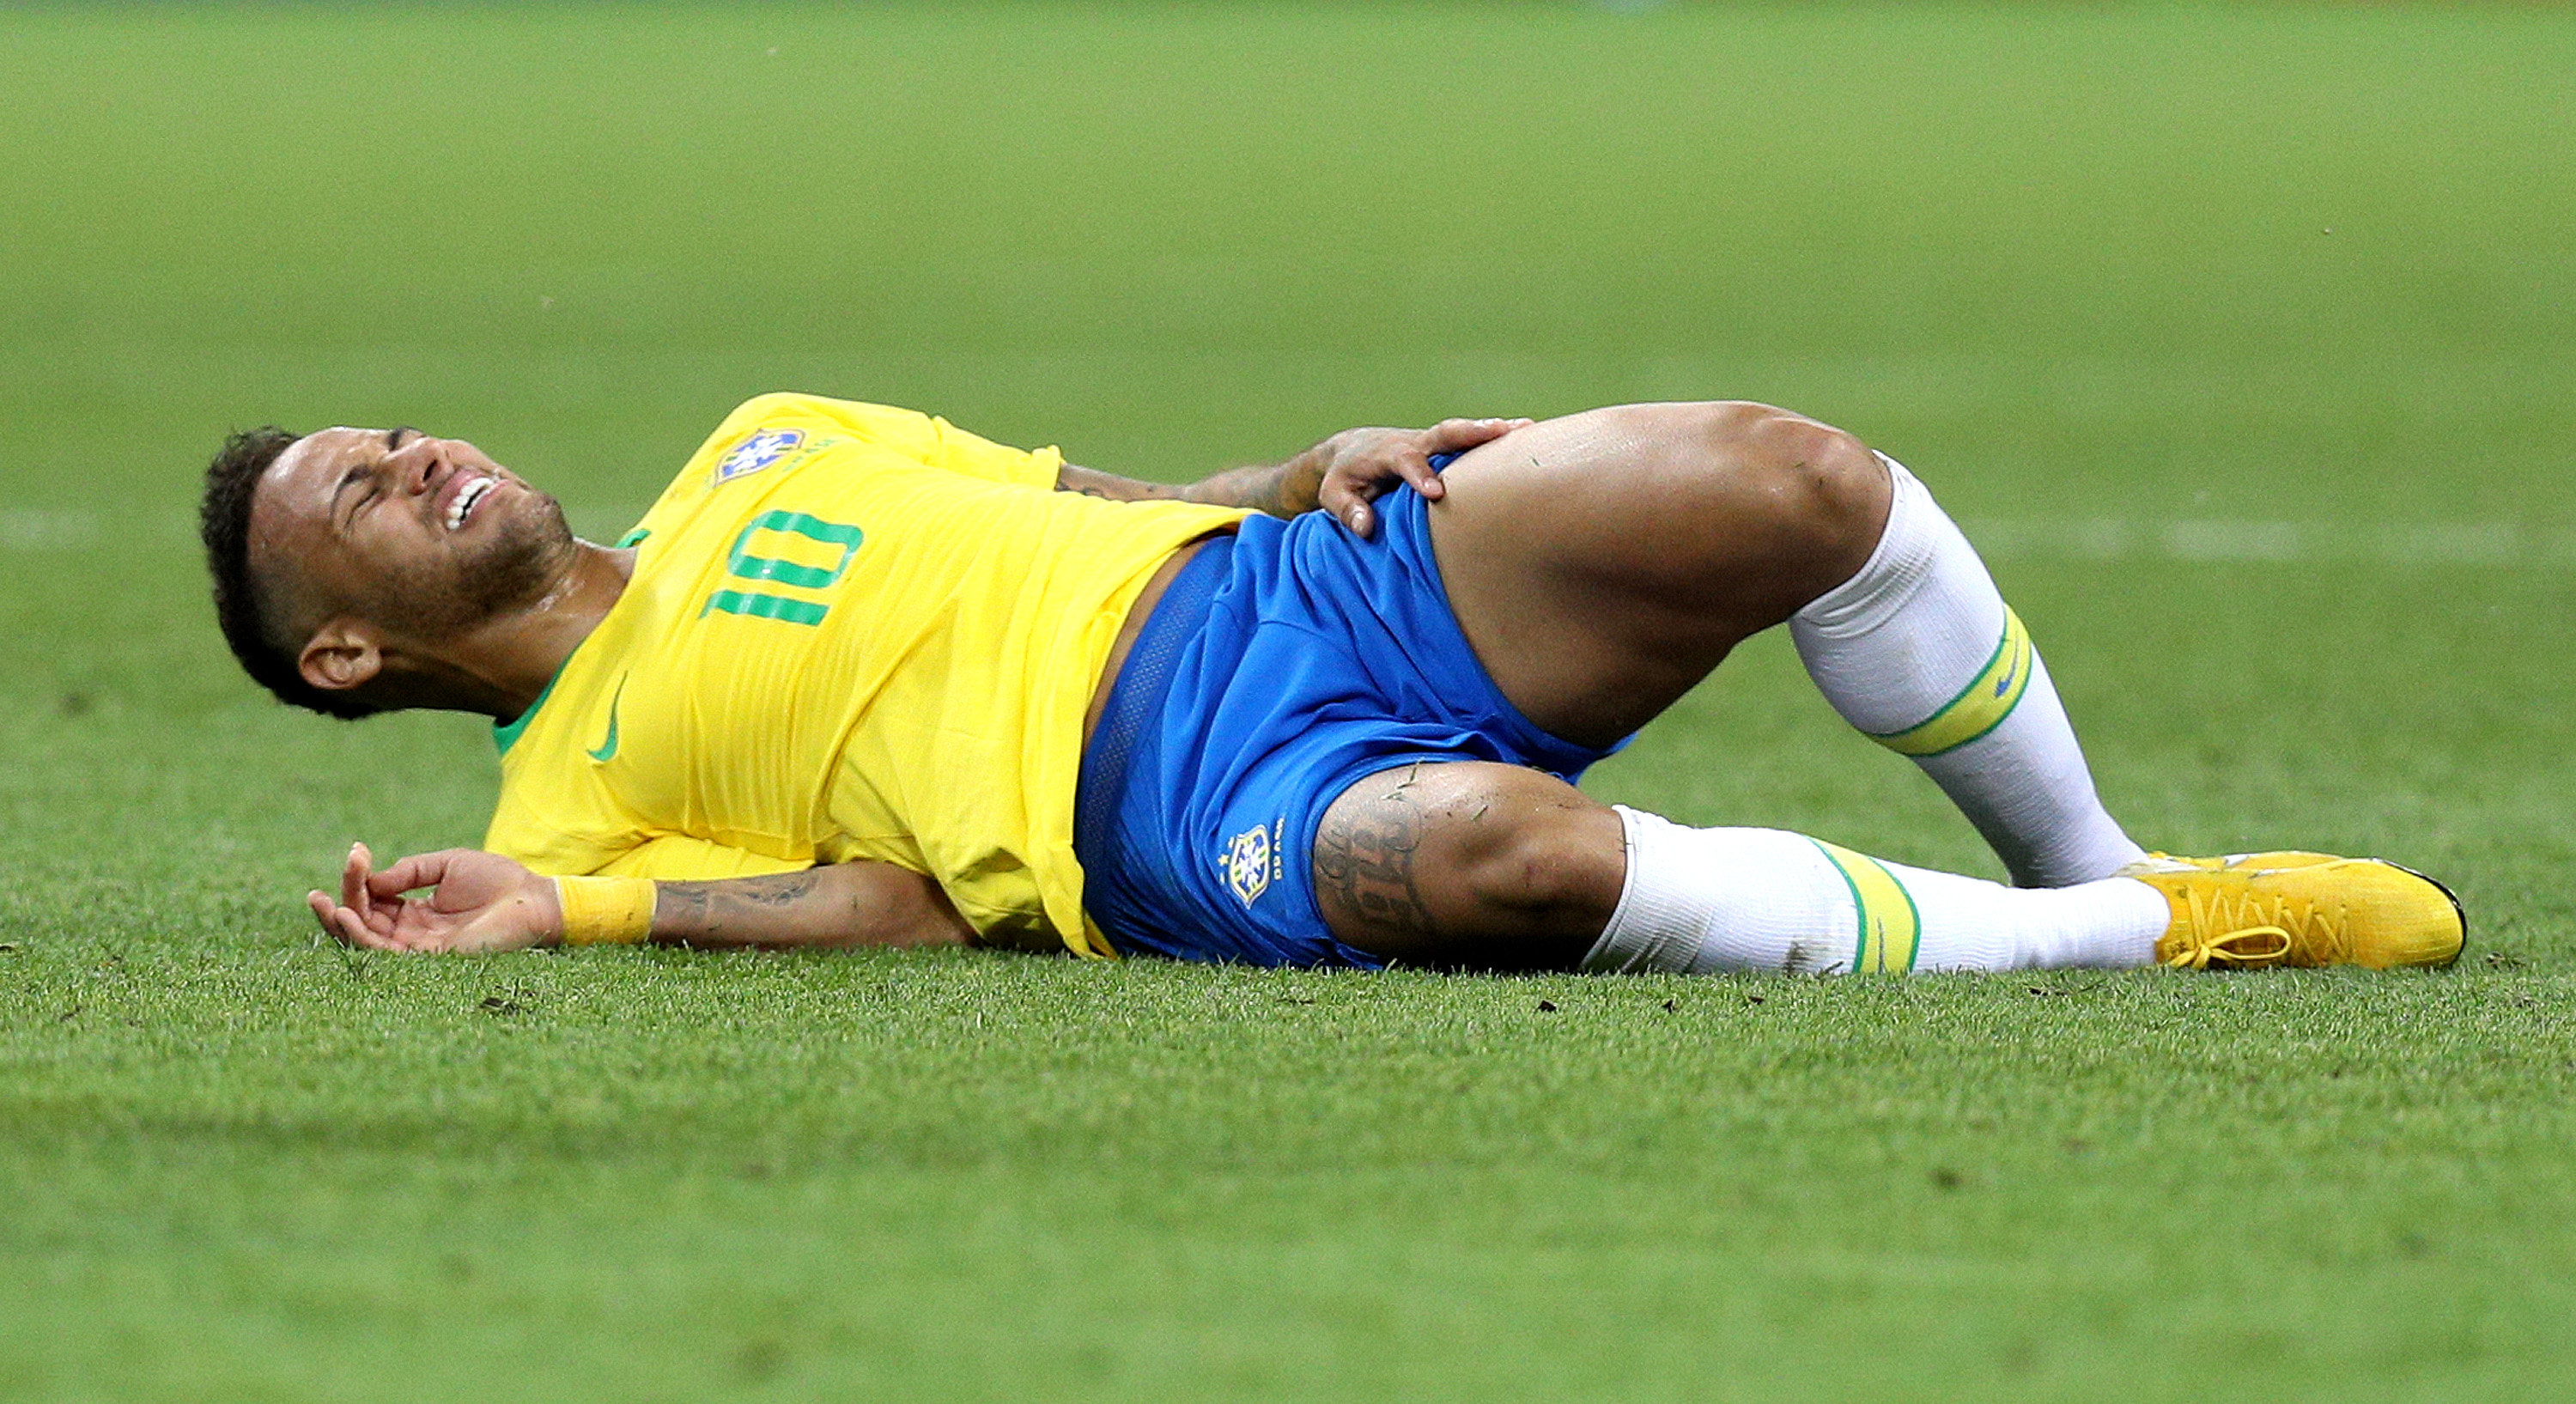 KAZAN, RUSSIA - JULY 06:  Neymar Jr of Brazil goes down injured during the 2018 FIFA World Cup Russia Quarter Final match between Brazil and Belgium at Kazan Arena on July 6, 2018 in Kazan, Russia.  (Photo by Buda Mendes/Getty Images)